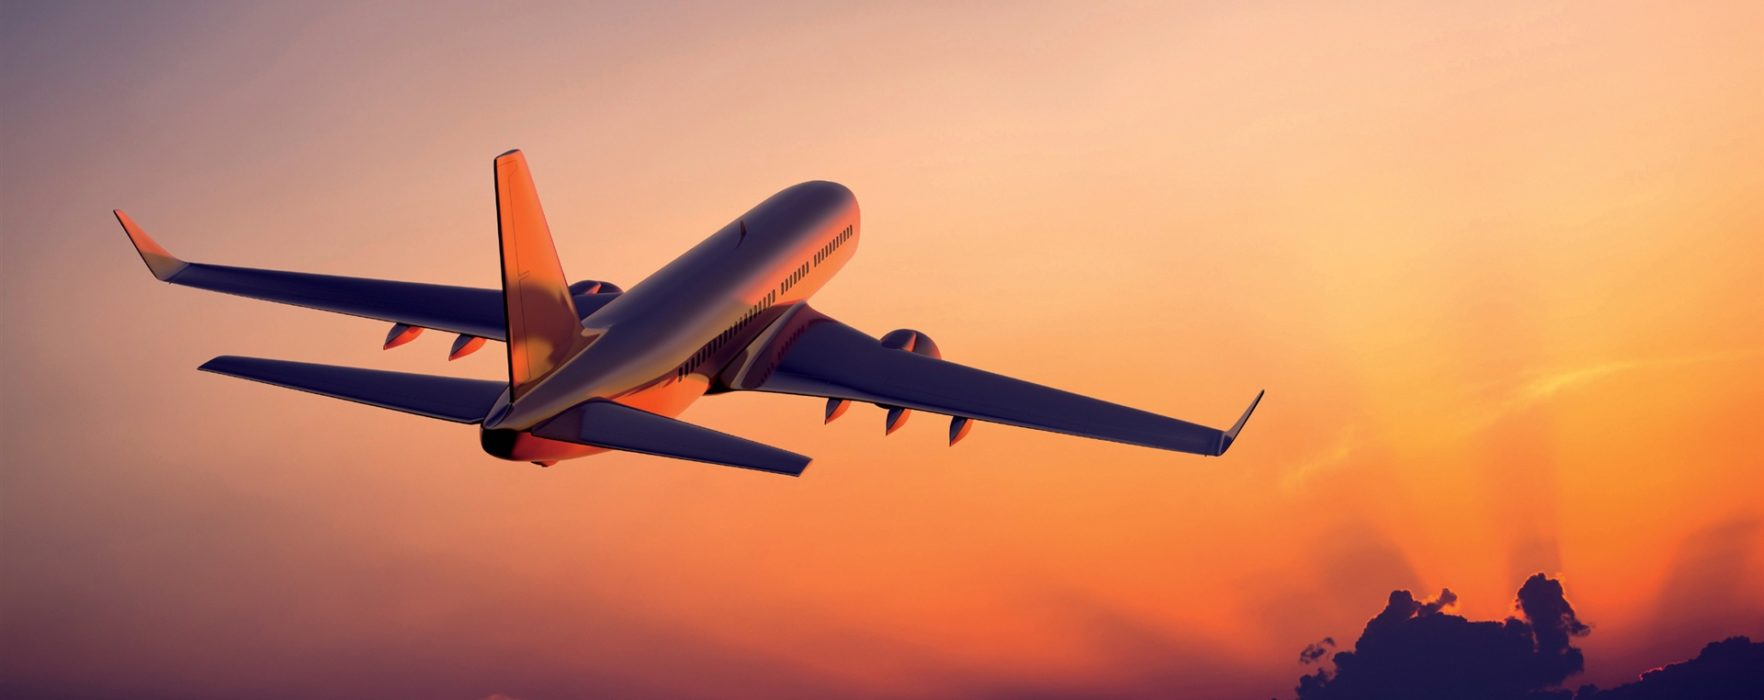 Easyjet launches a new app feature allowing users to book their dream trip using just a photo